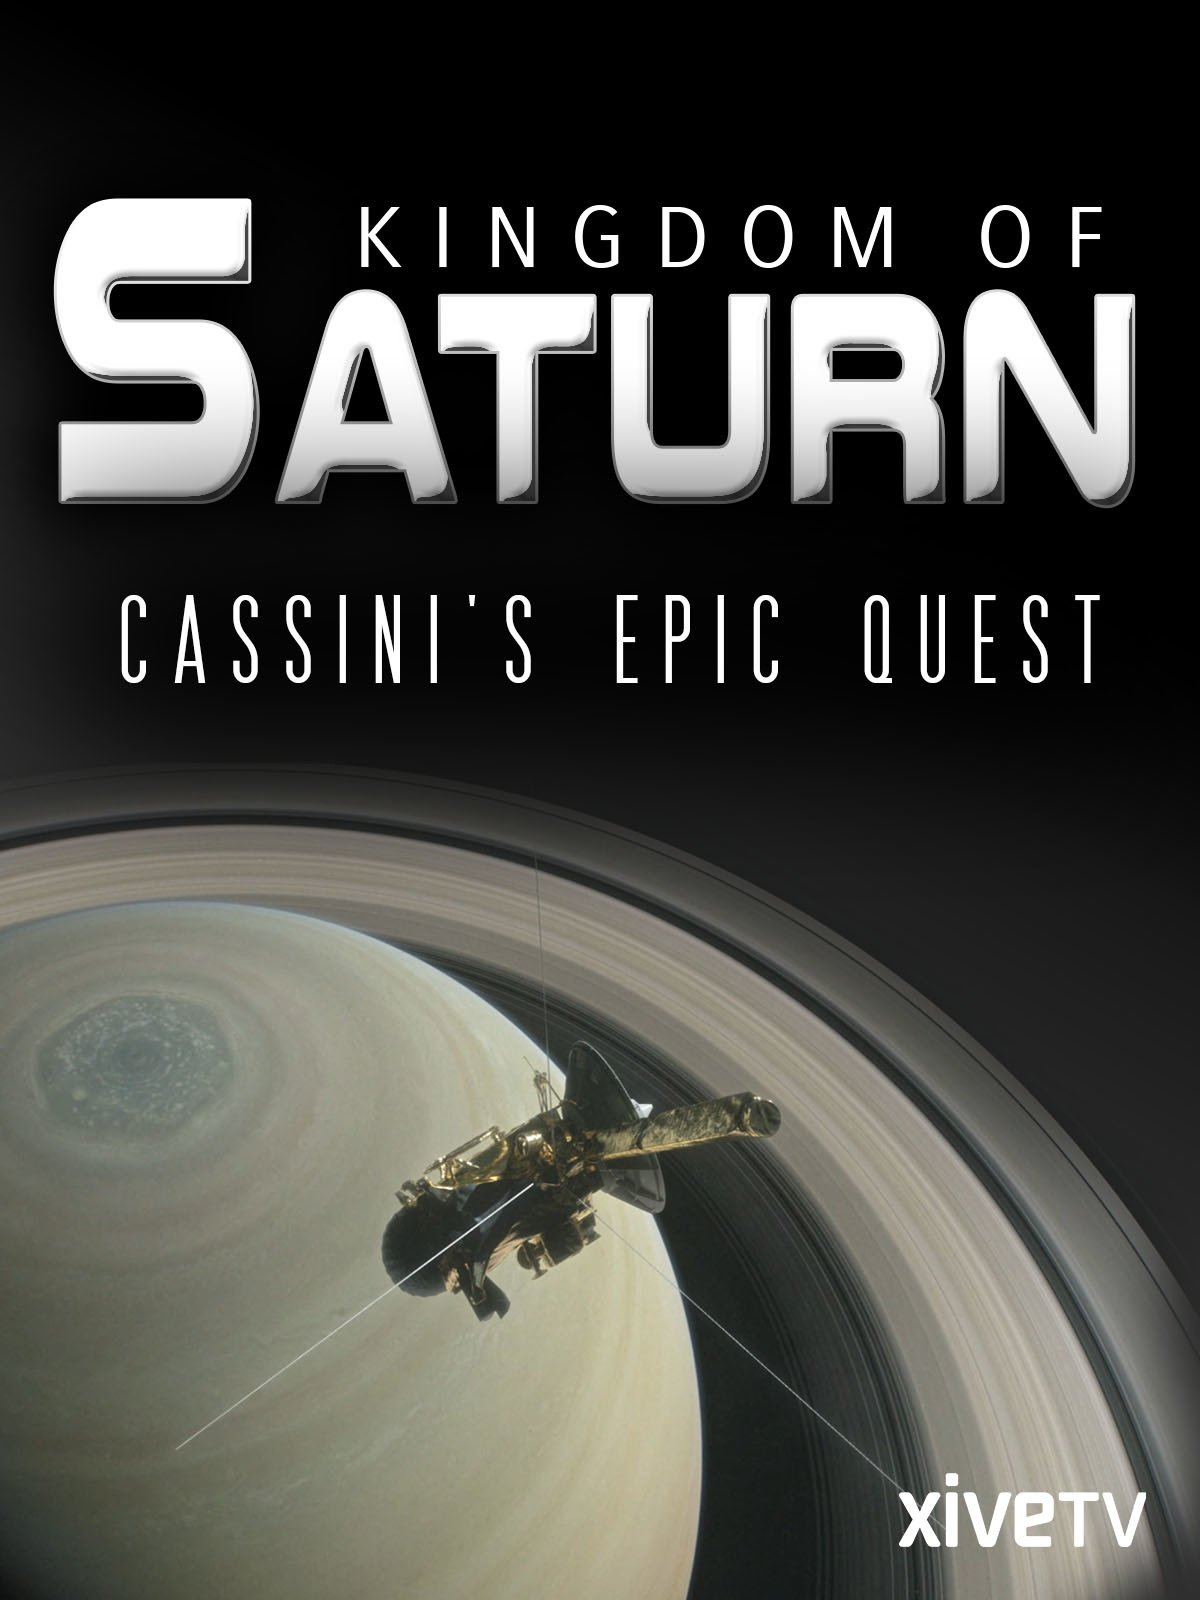 Kingdom of Saturn: Cassini's Epic Quest